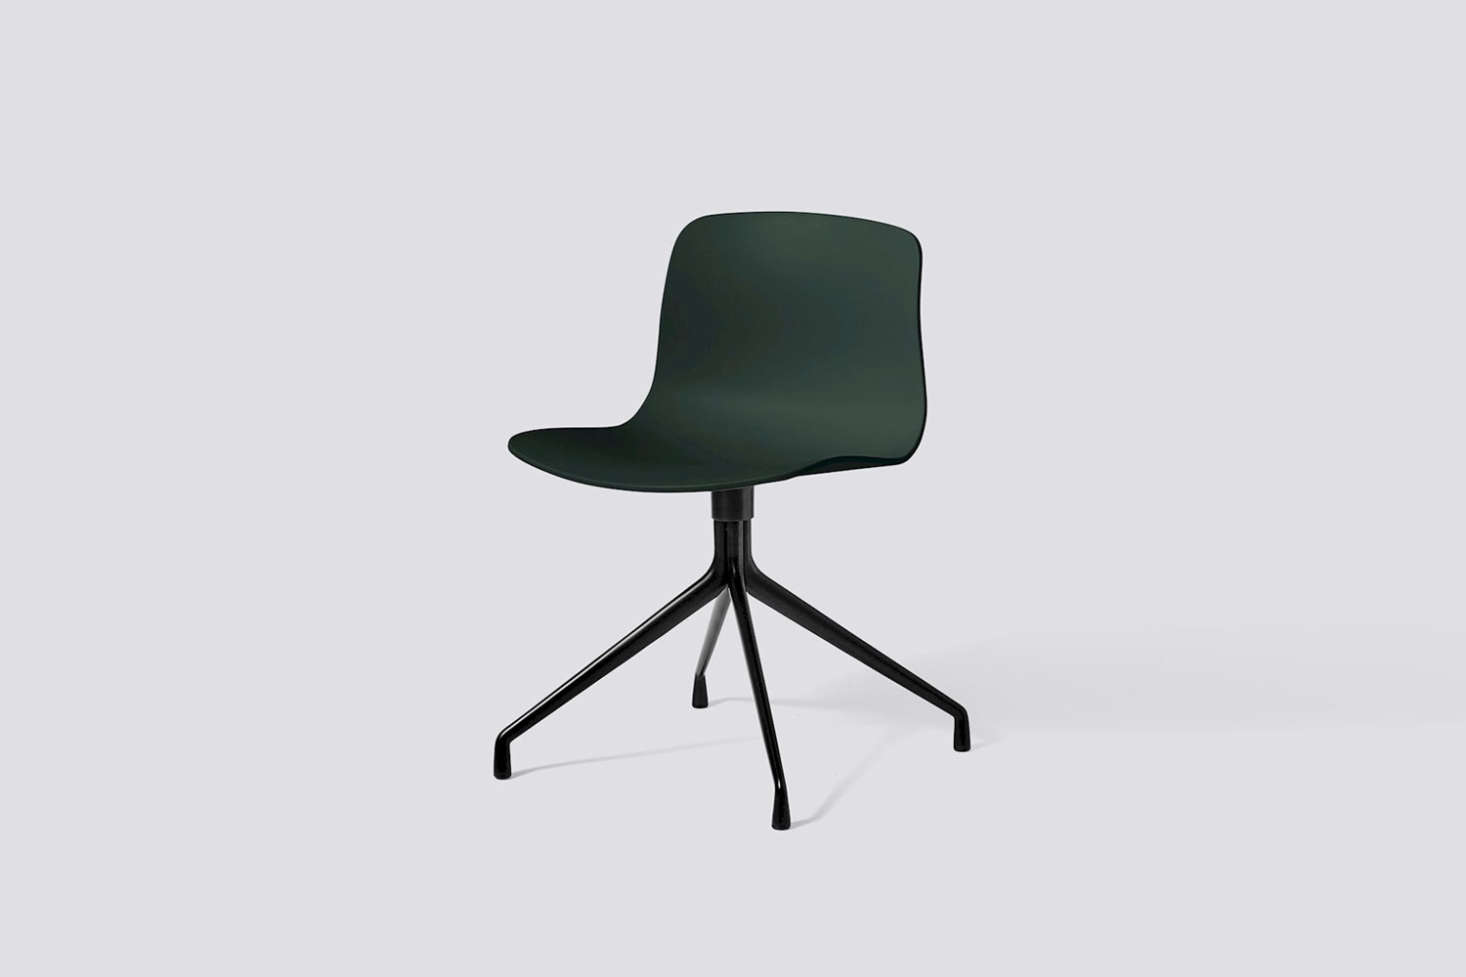 modern desk chair. The Hay About A Chair Is Designed By Hee Welling For And Comes In Modern Desk Chair M